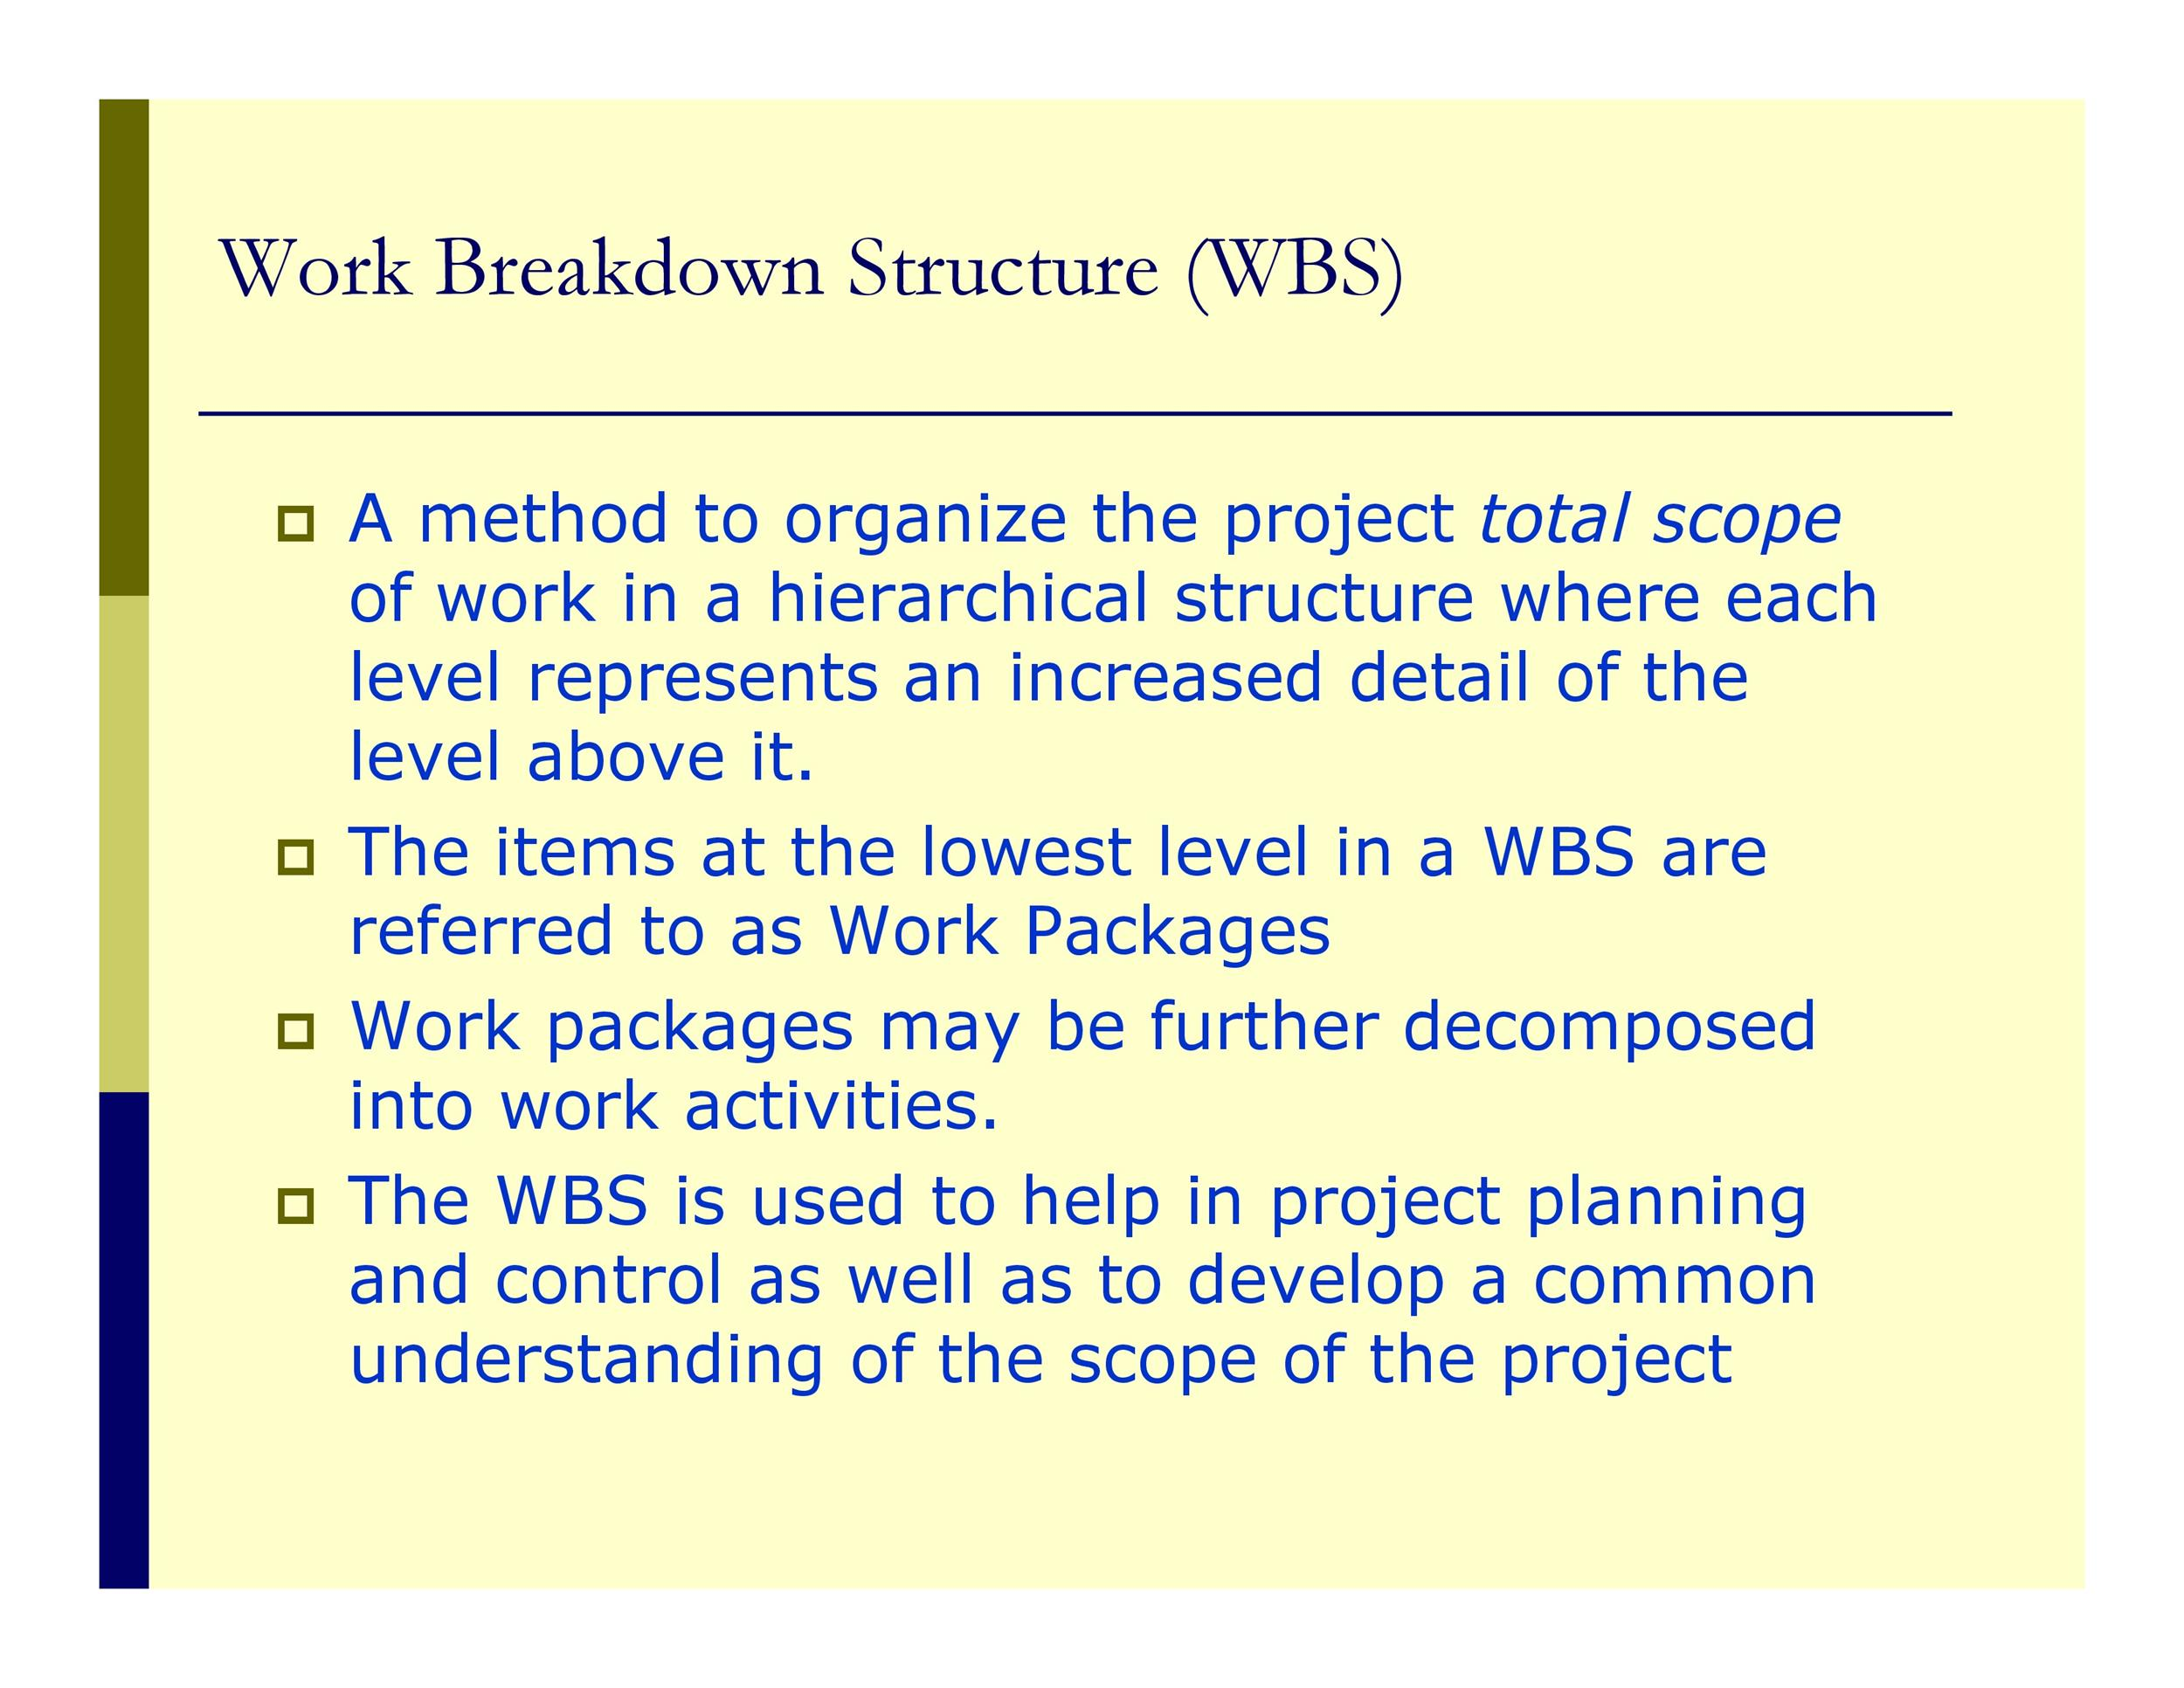 Free work breakdown structure template 39